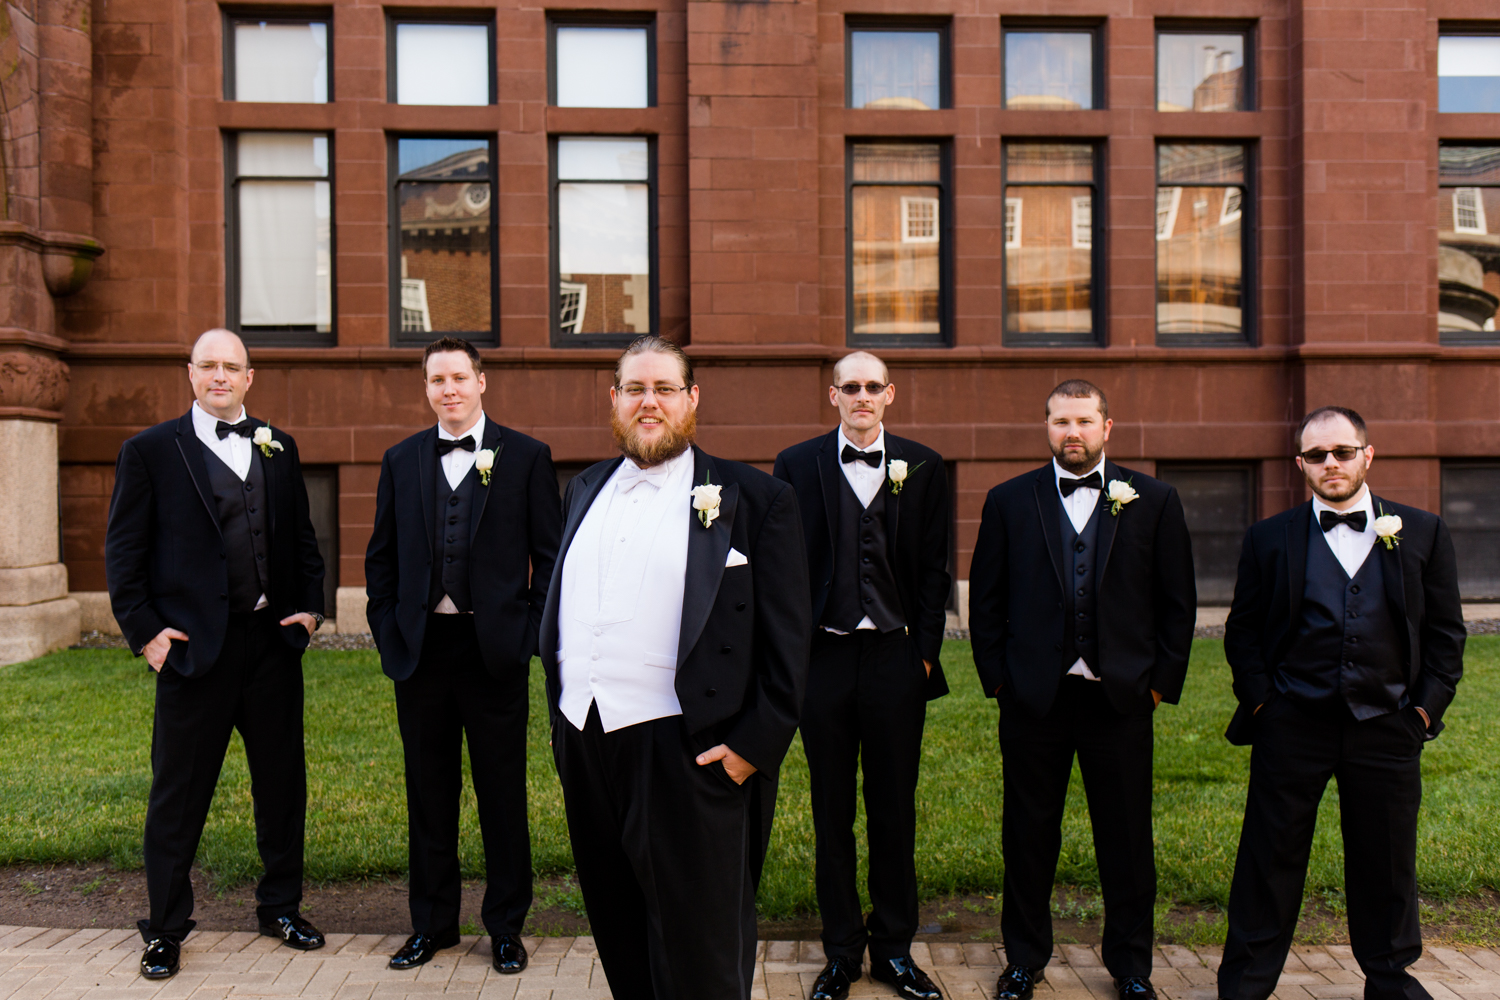 Groom in a tux with his groomsmen behind him.